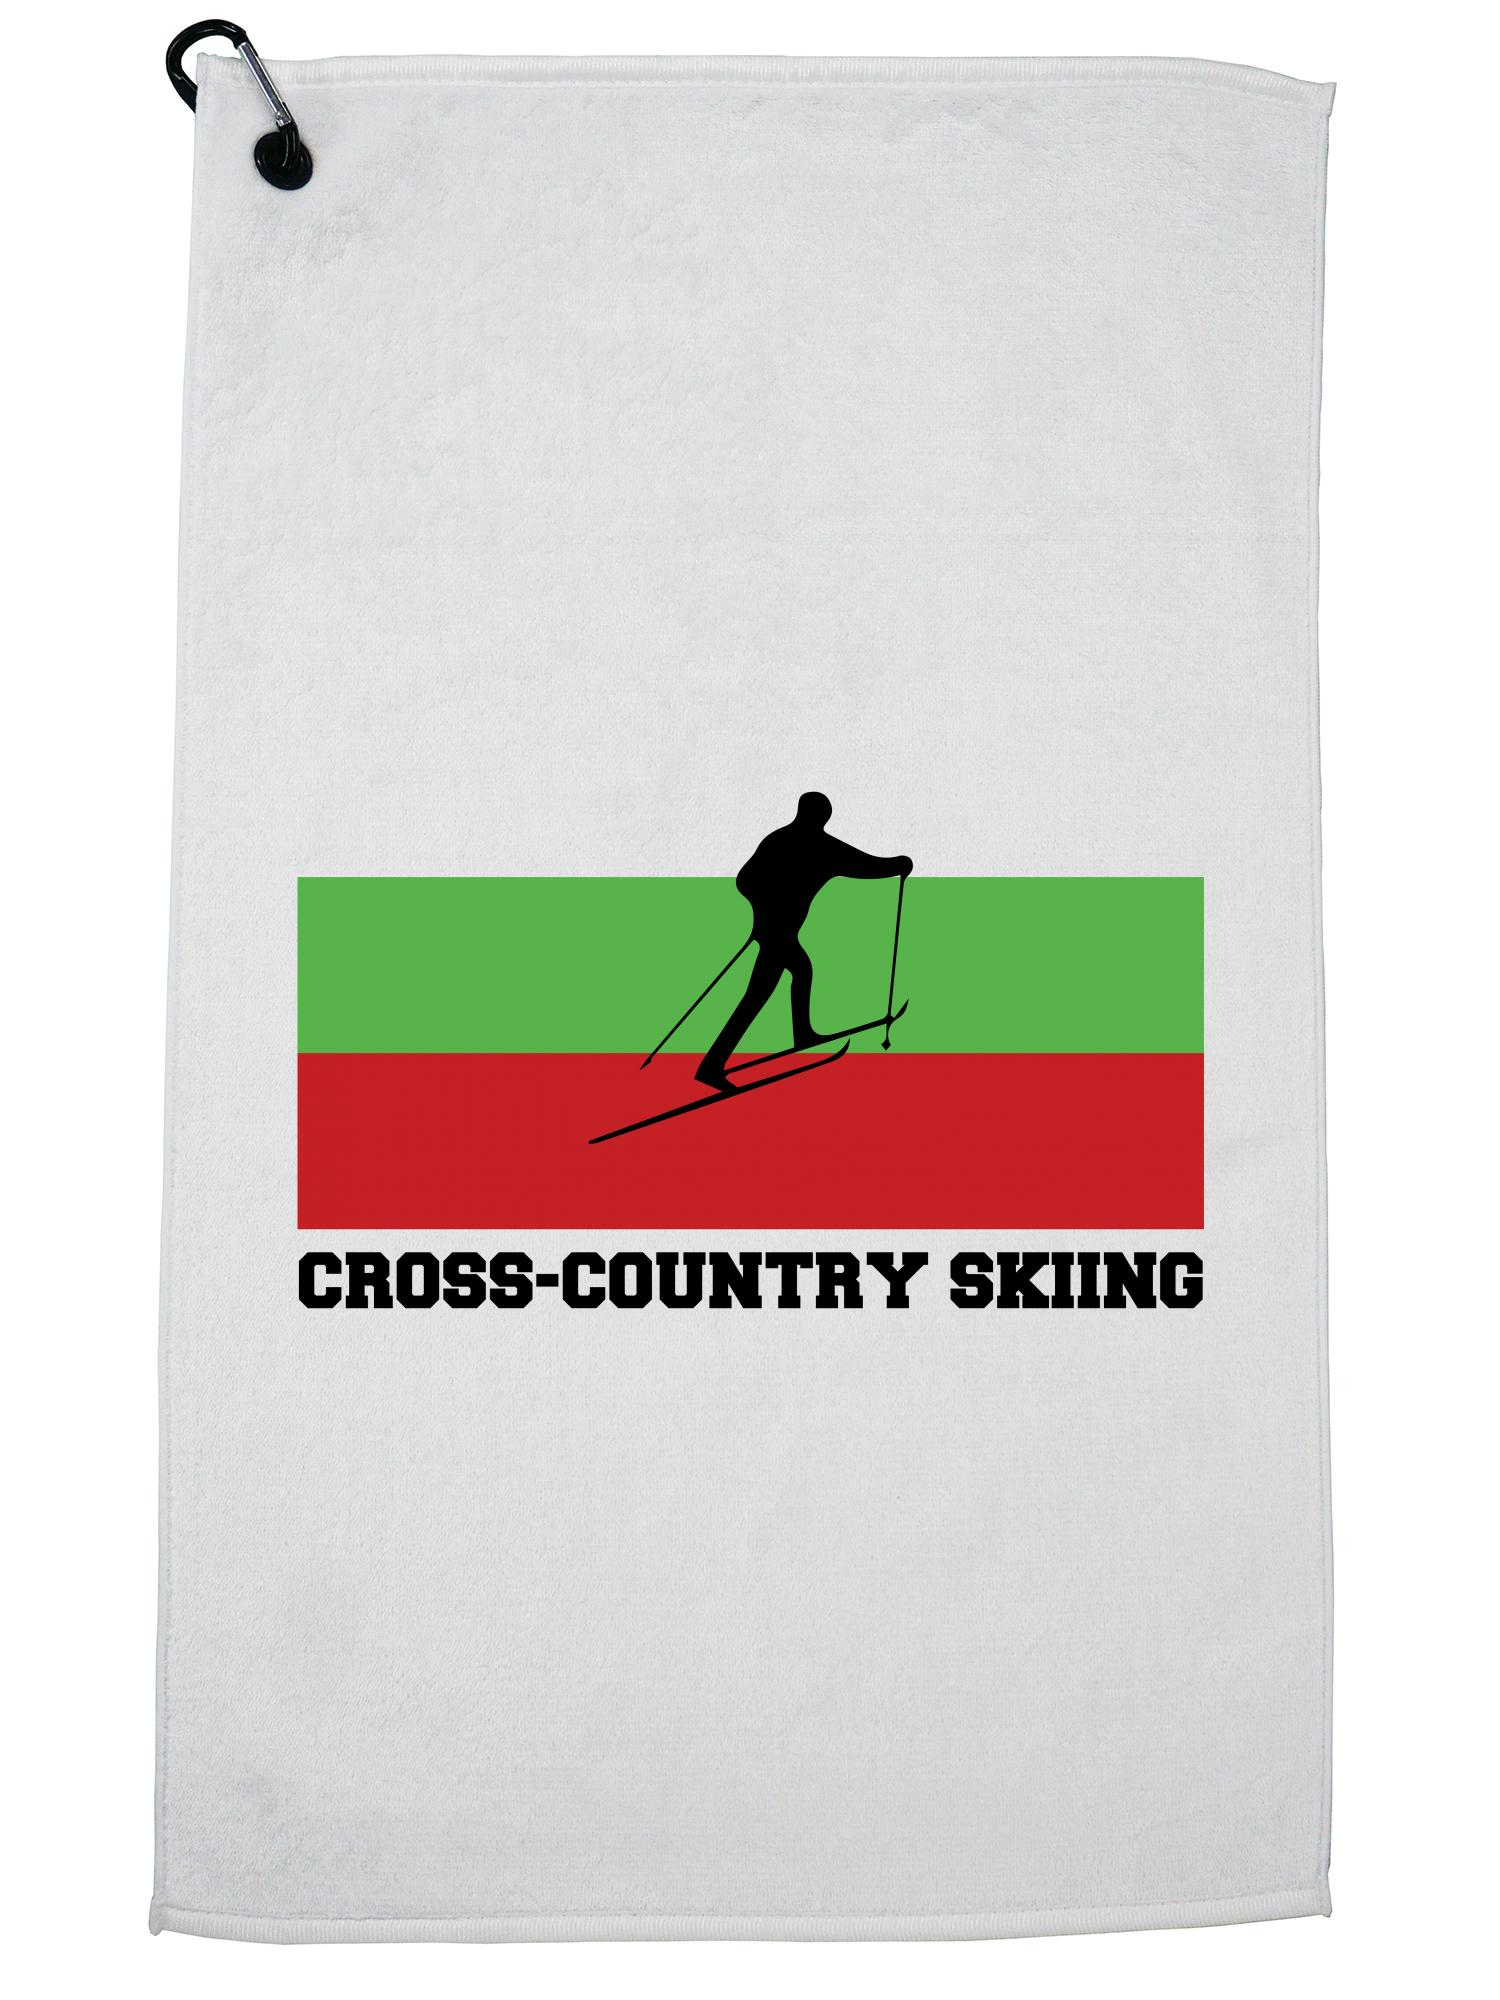 Bulgaria Olympic Cross-Country Skiing Flag Silhouette Golf Towel with Carabiner Clip by Hollywood Thread